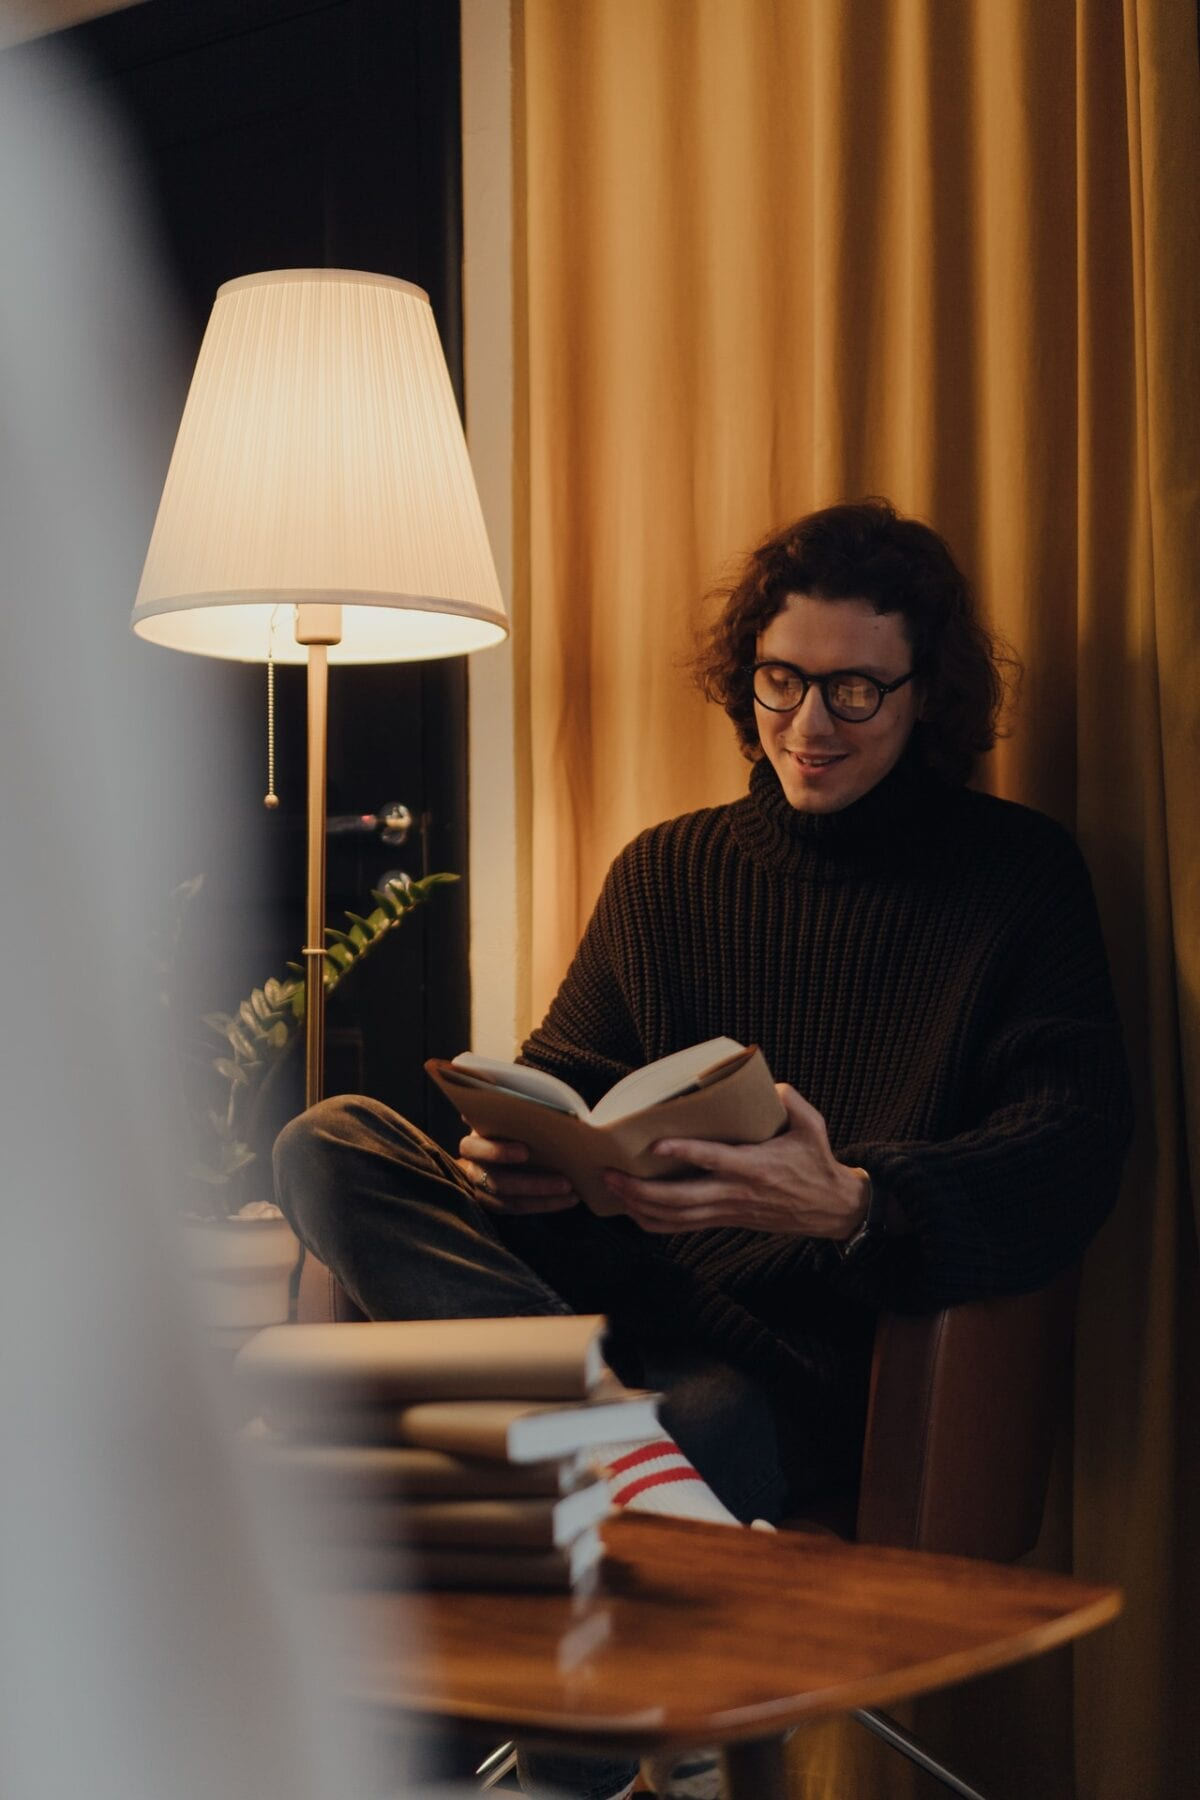 man with a book